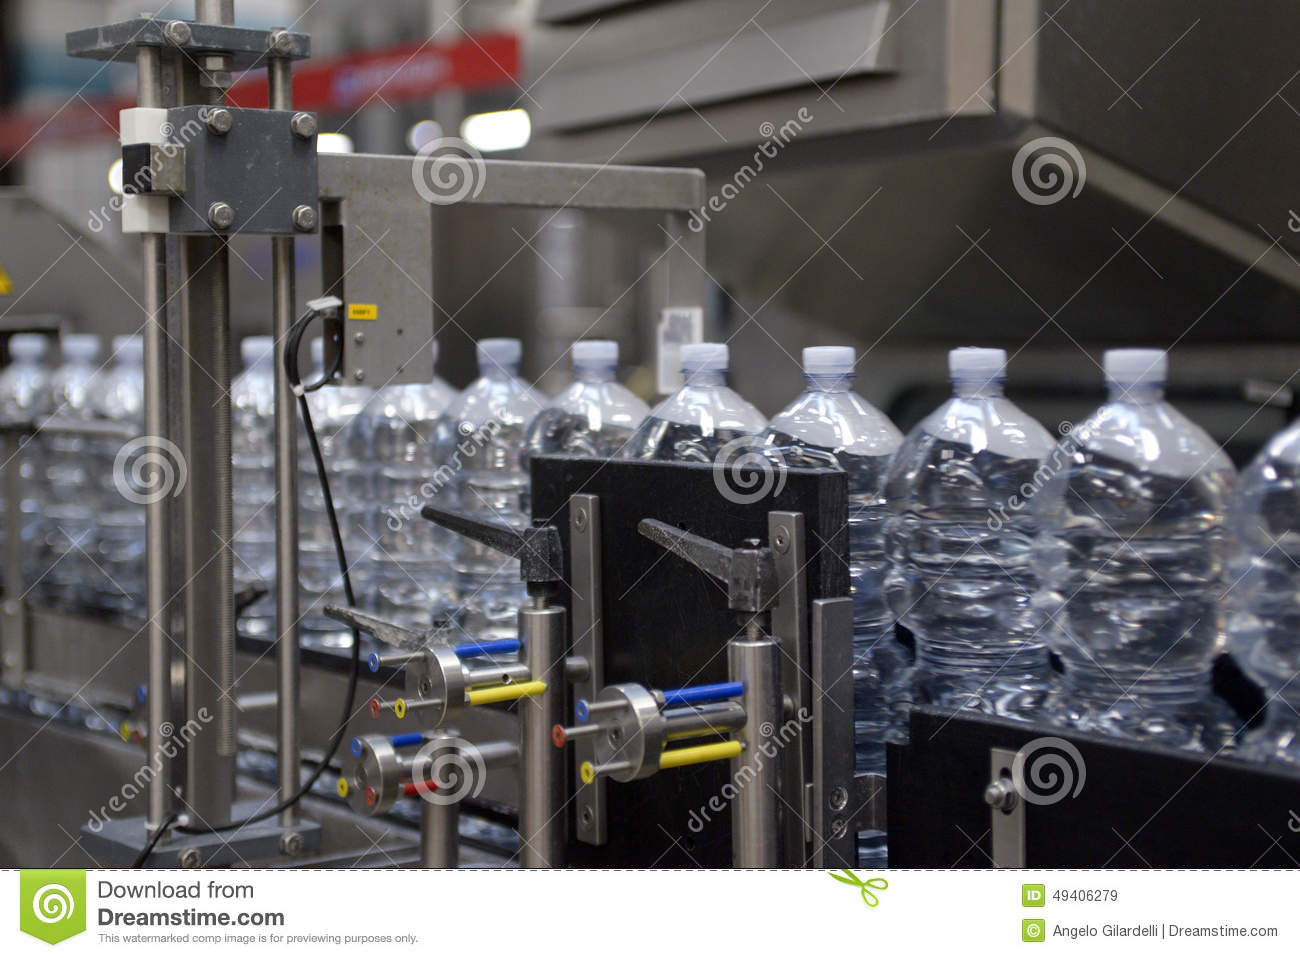 Download Industrie - Mineralwasser stockbild. Bild von mineral - 49406279